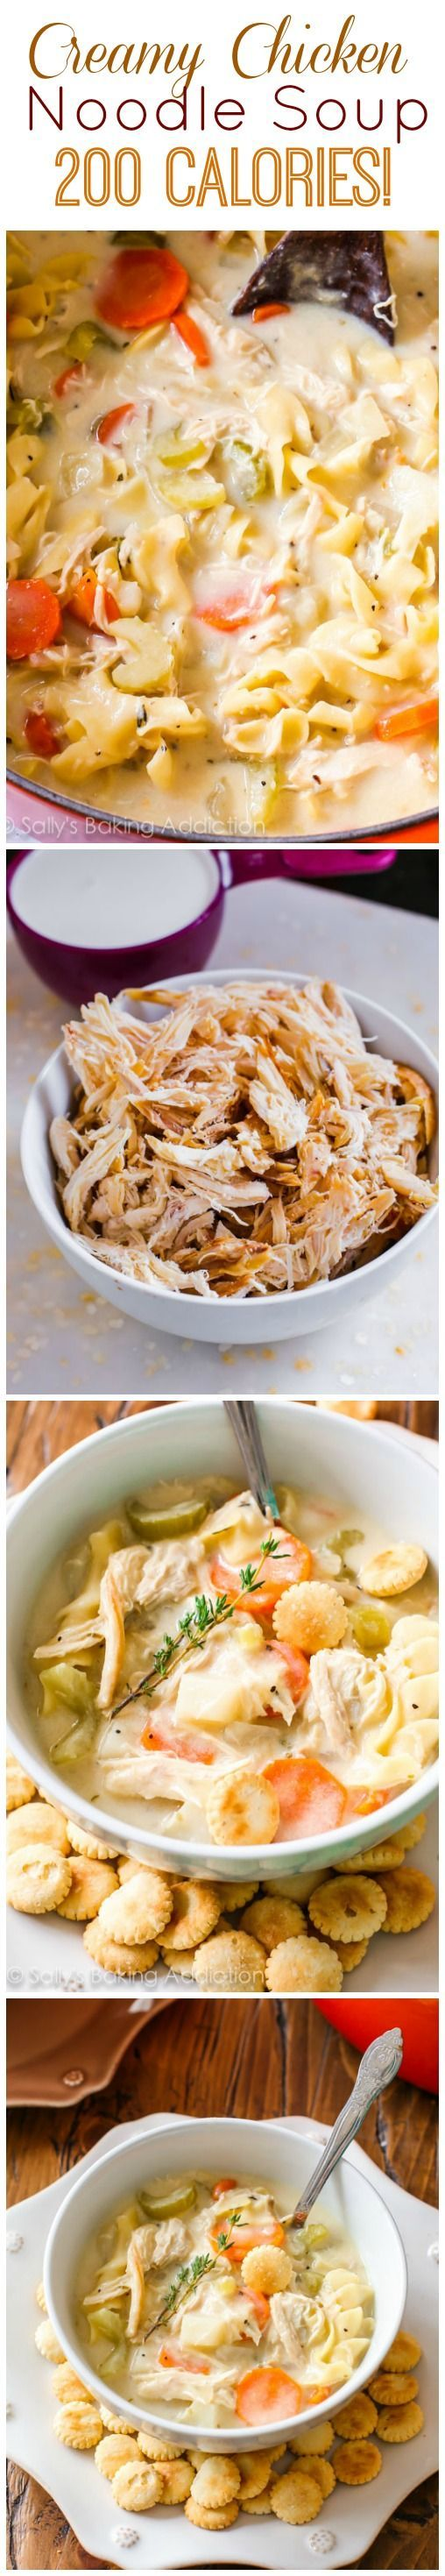 Lightened-Up Creamy Chicken Noodle Soup